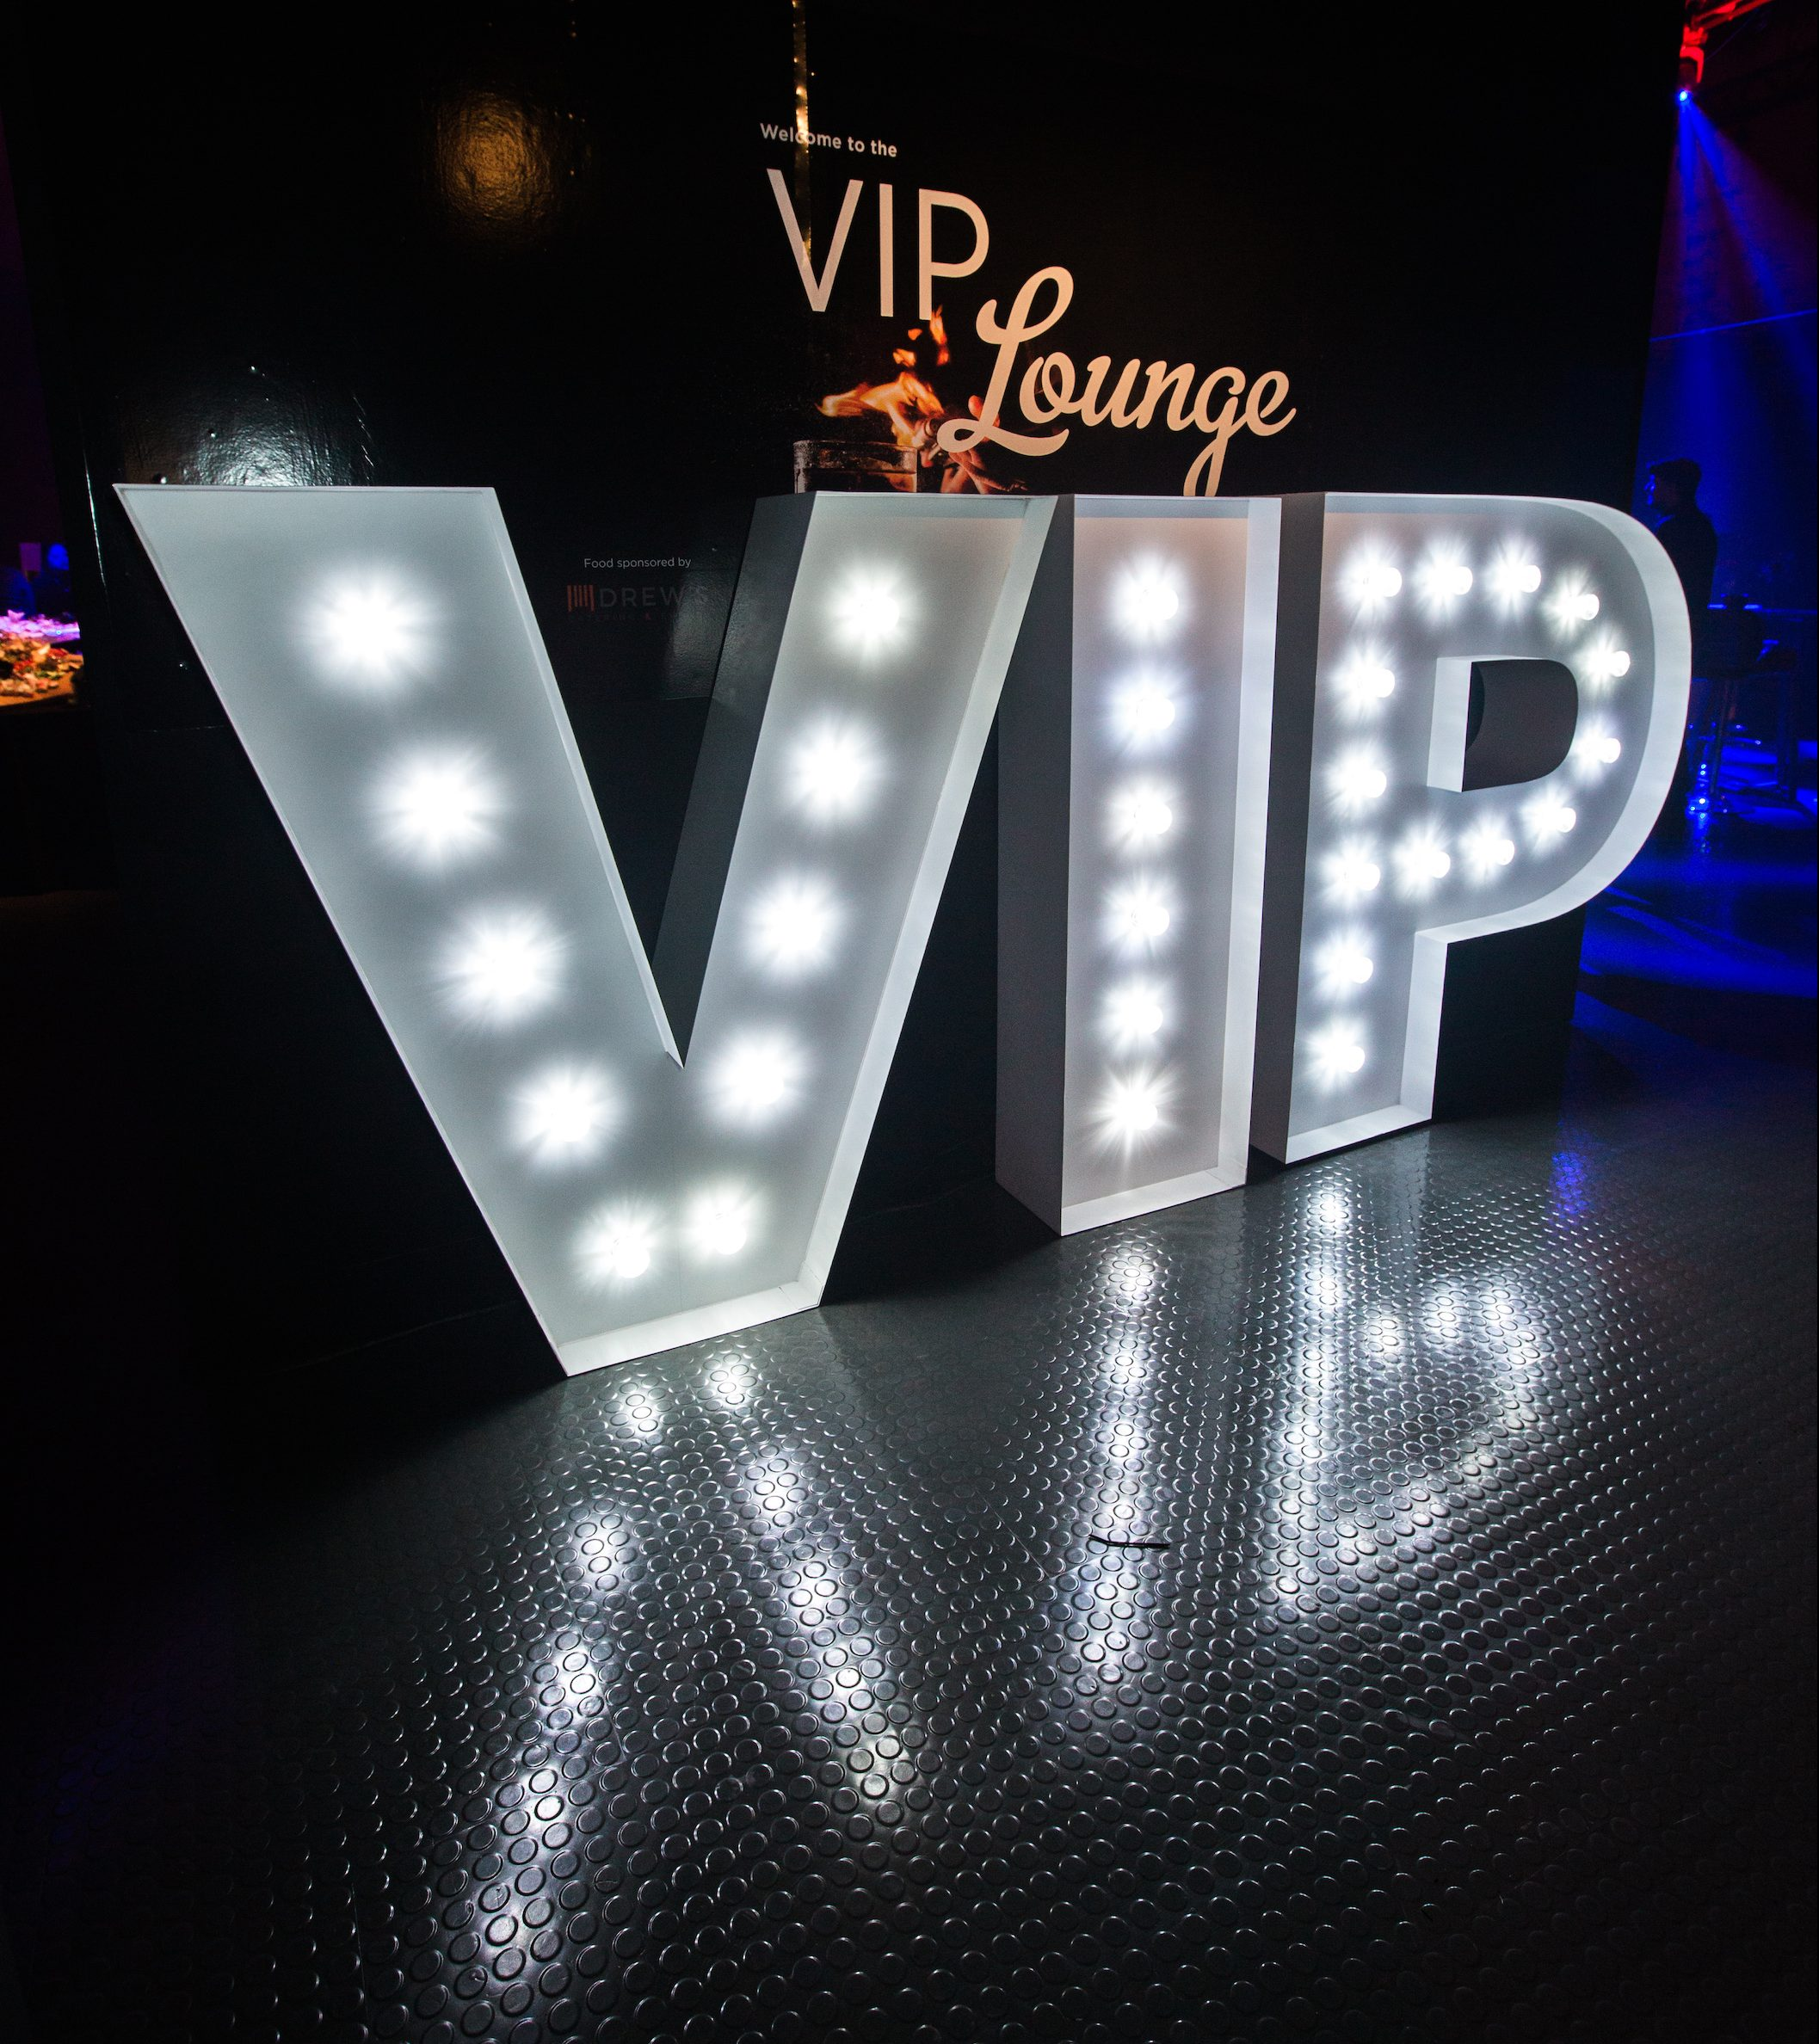 VIP Lounge photo by Isabella Sarmiento